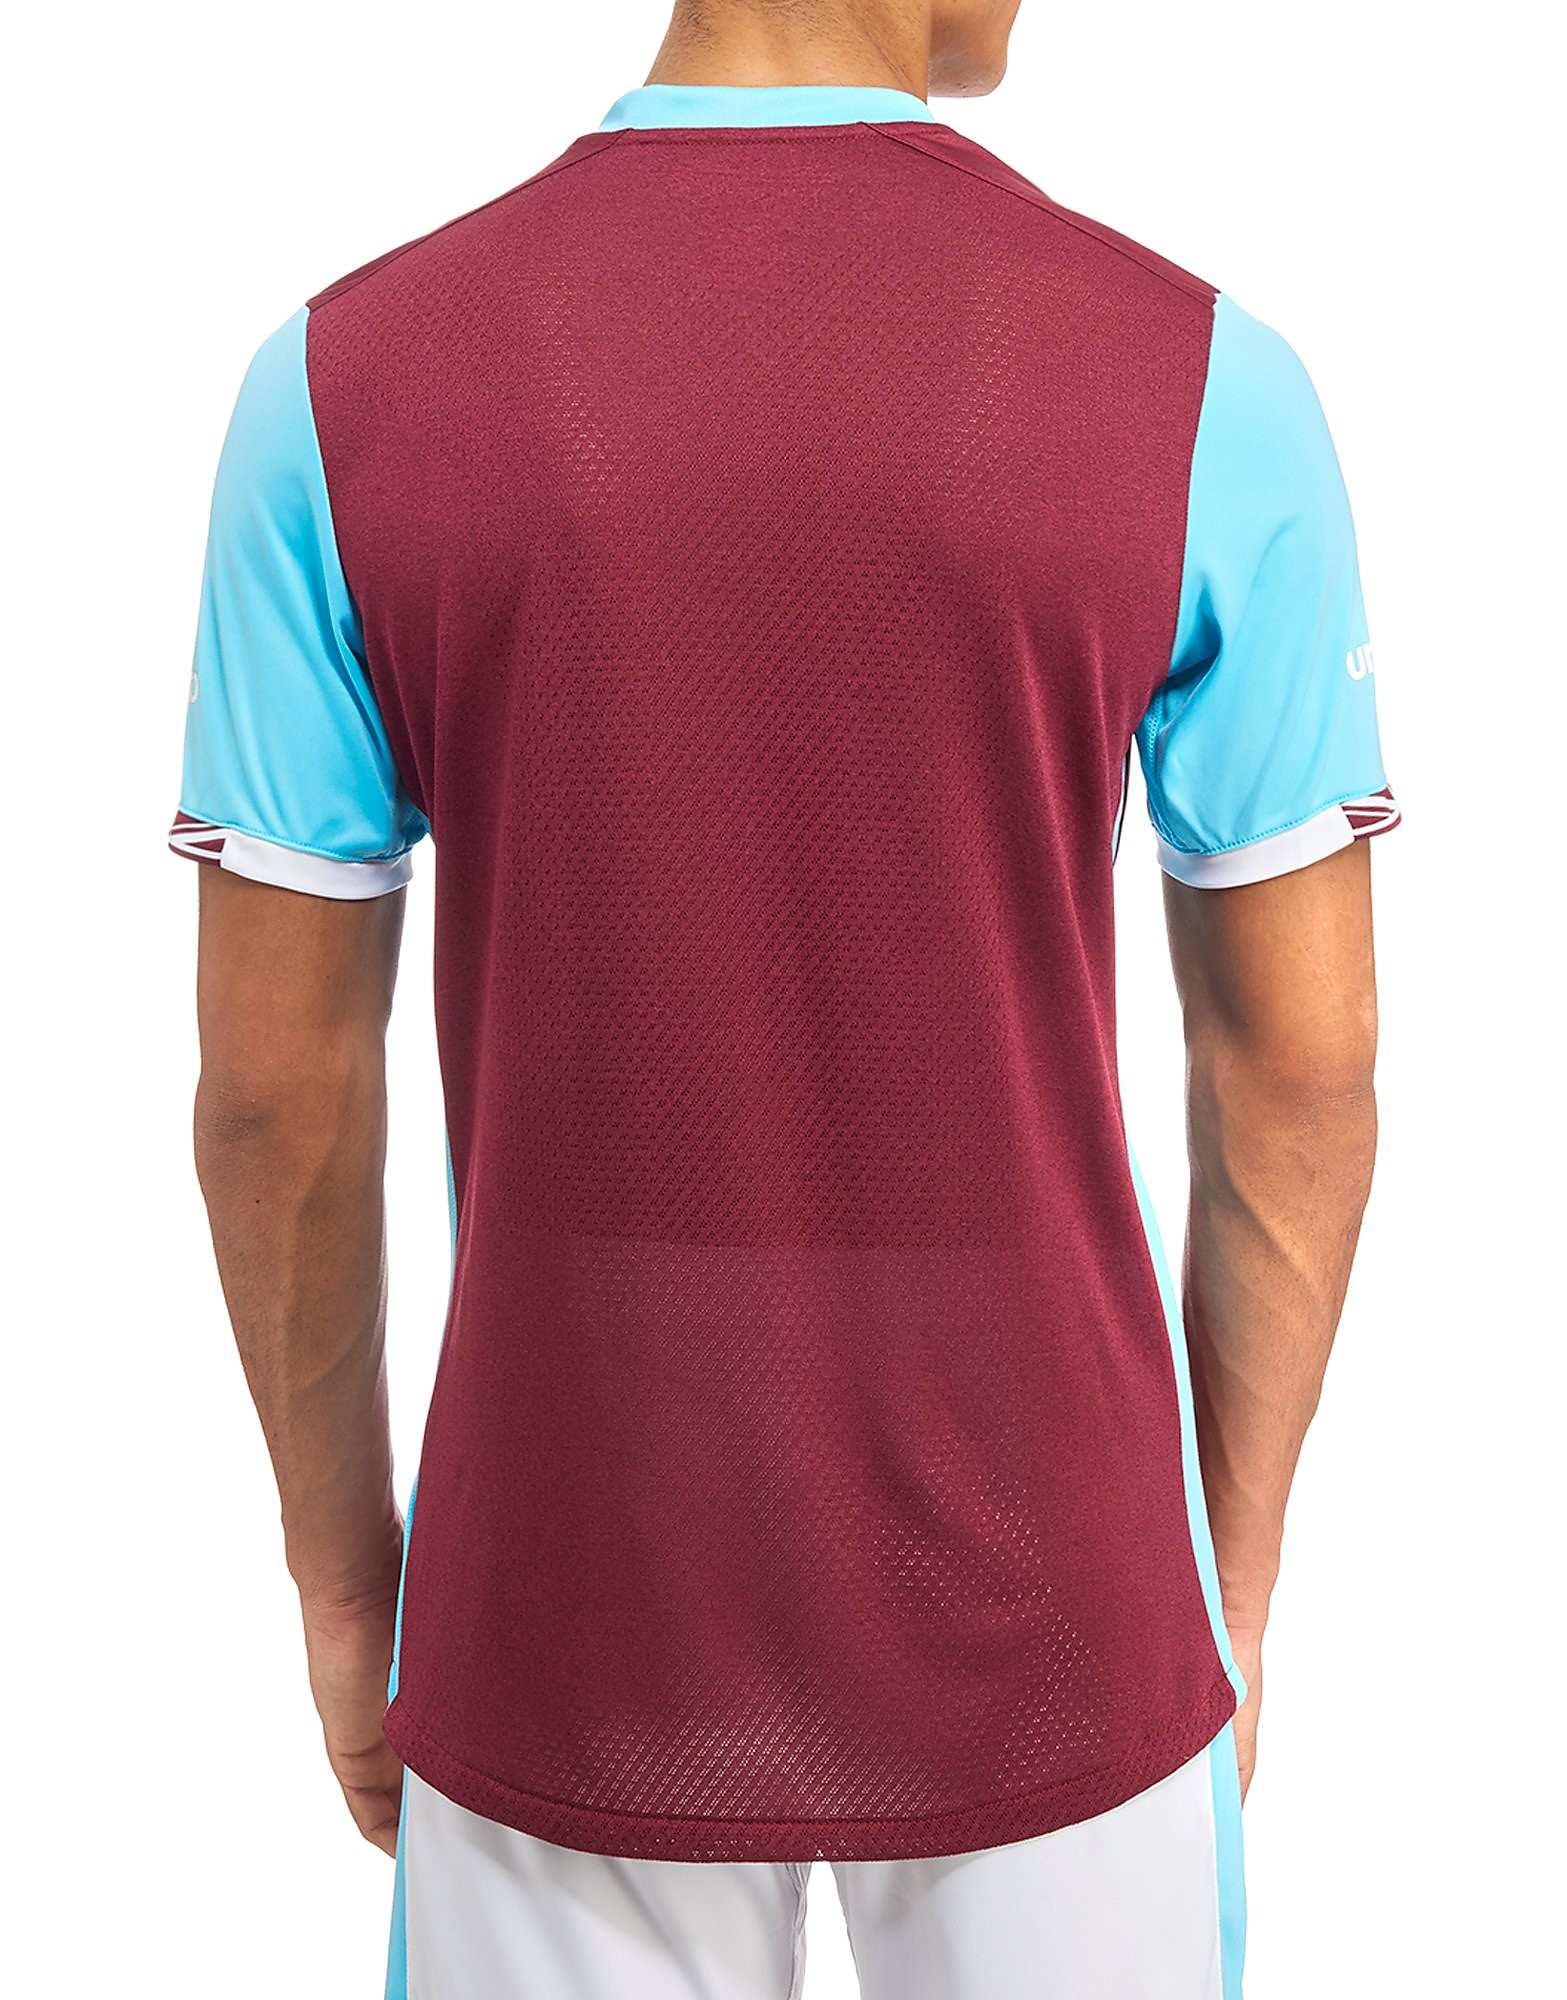 Umbro West Ham United 2016/17 Home Shirt